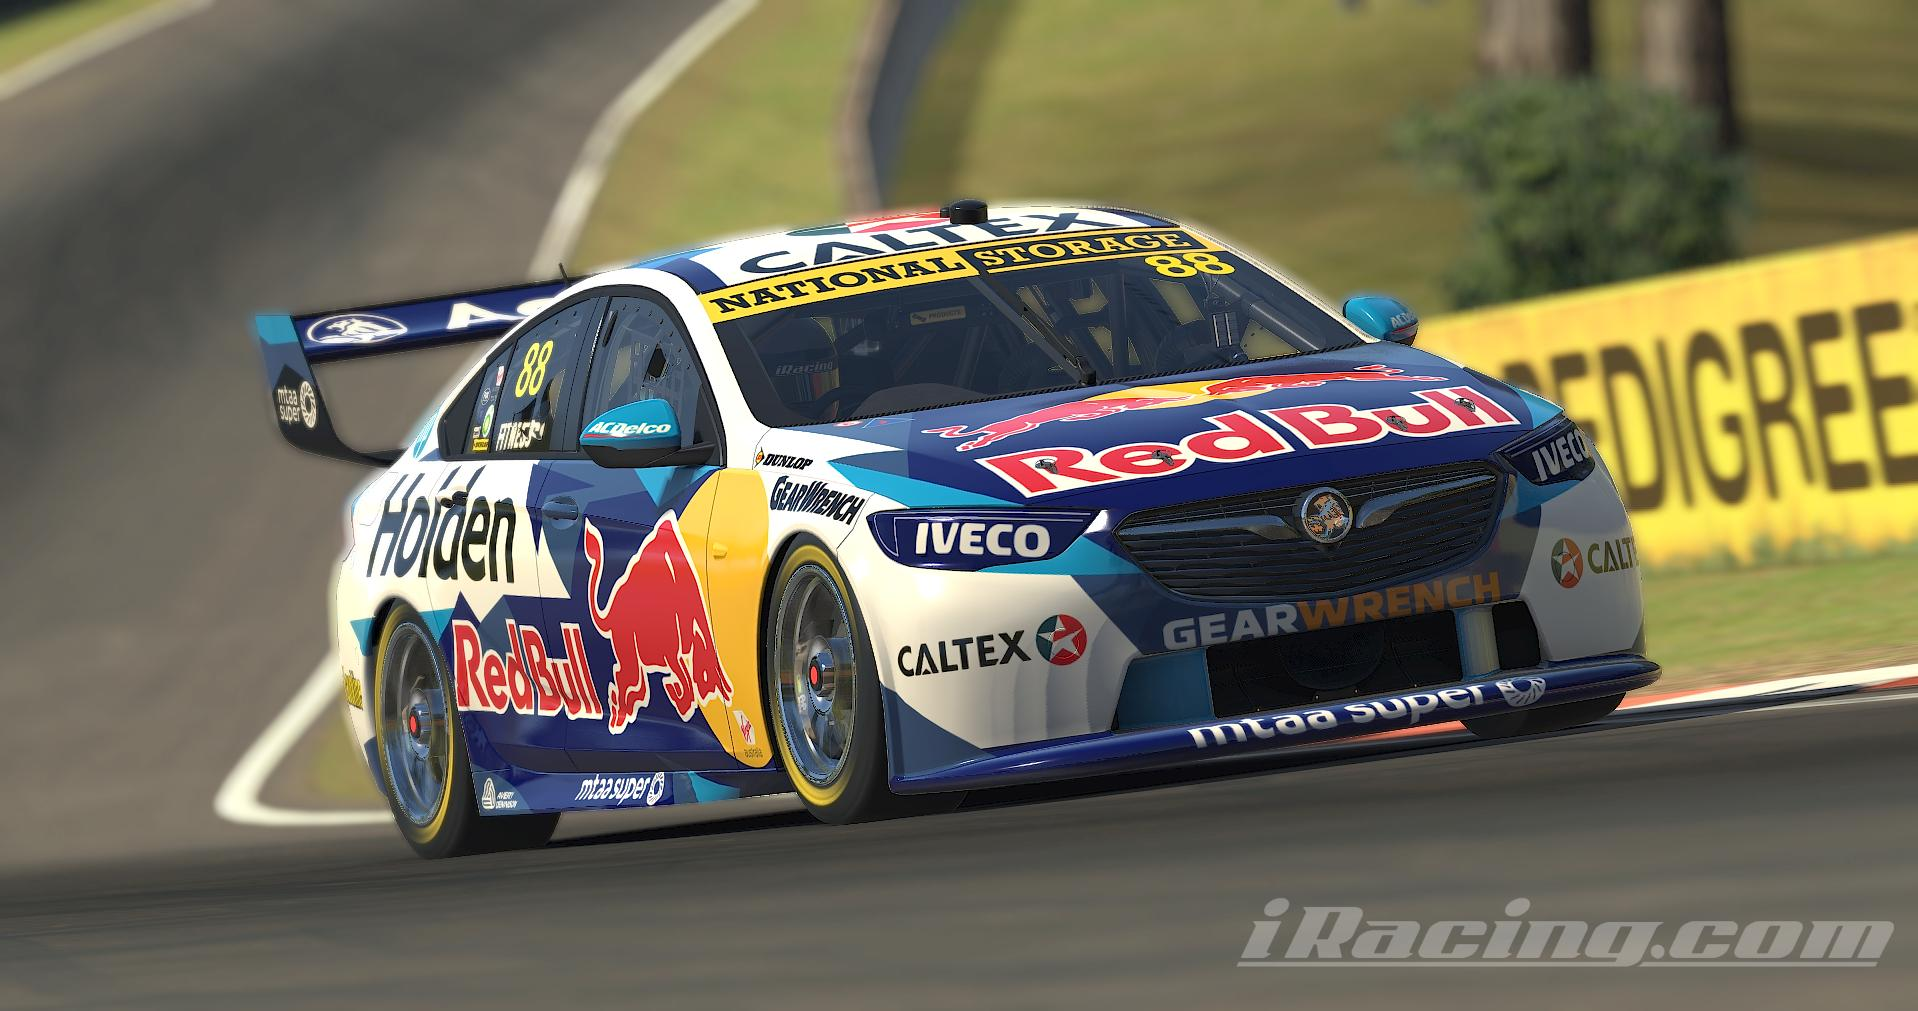 Preview of 2020 RedBull Holden Racing by Rob Fitness